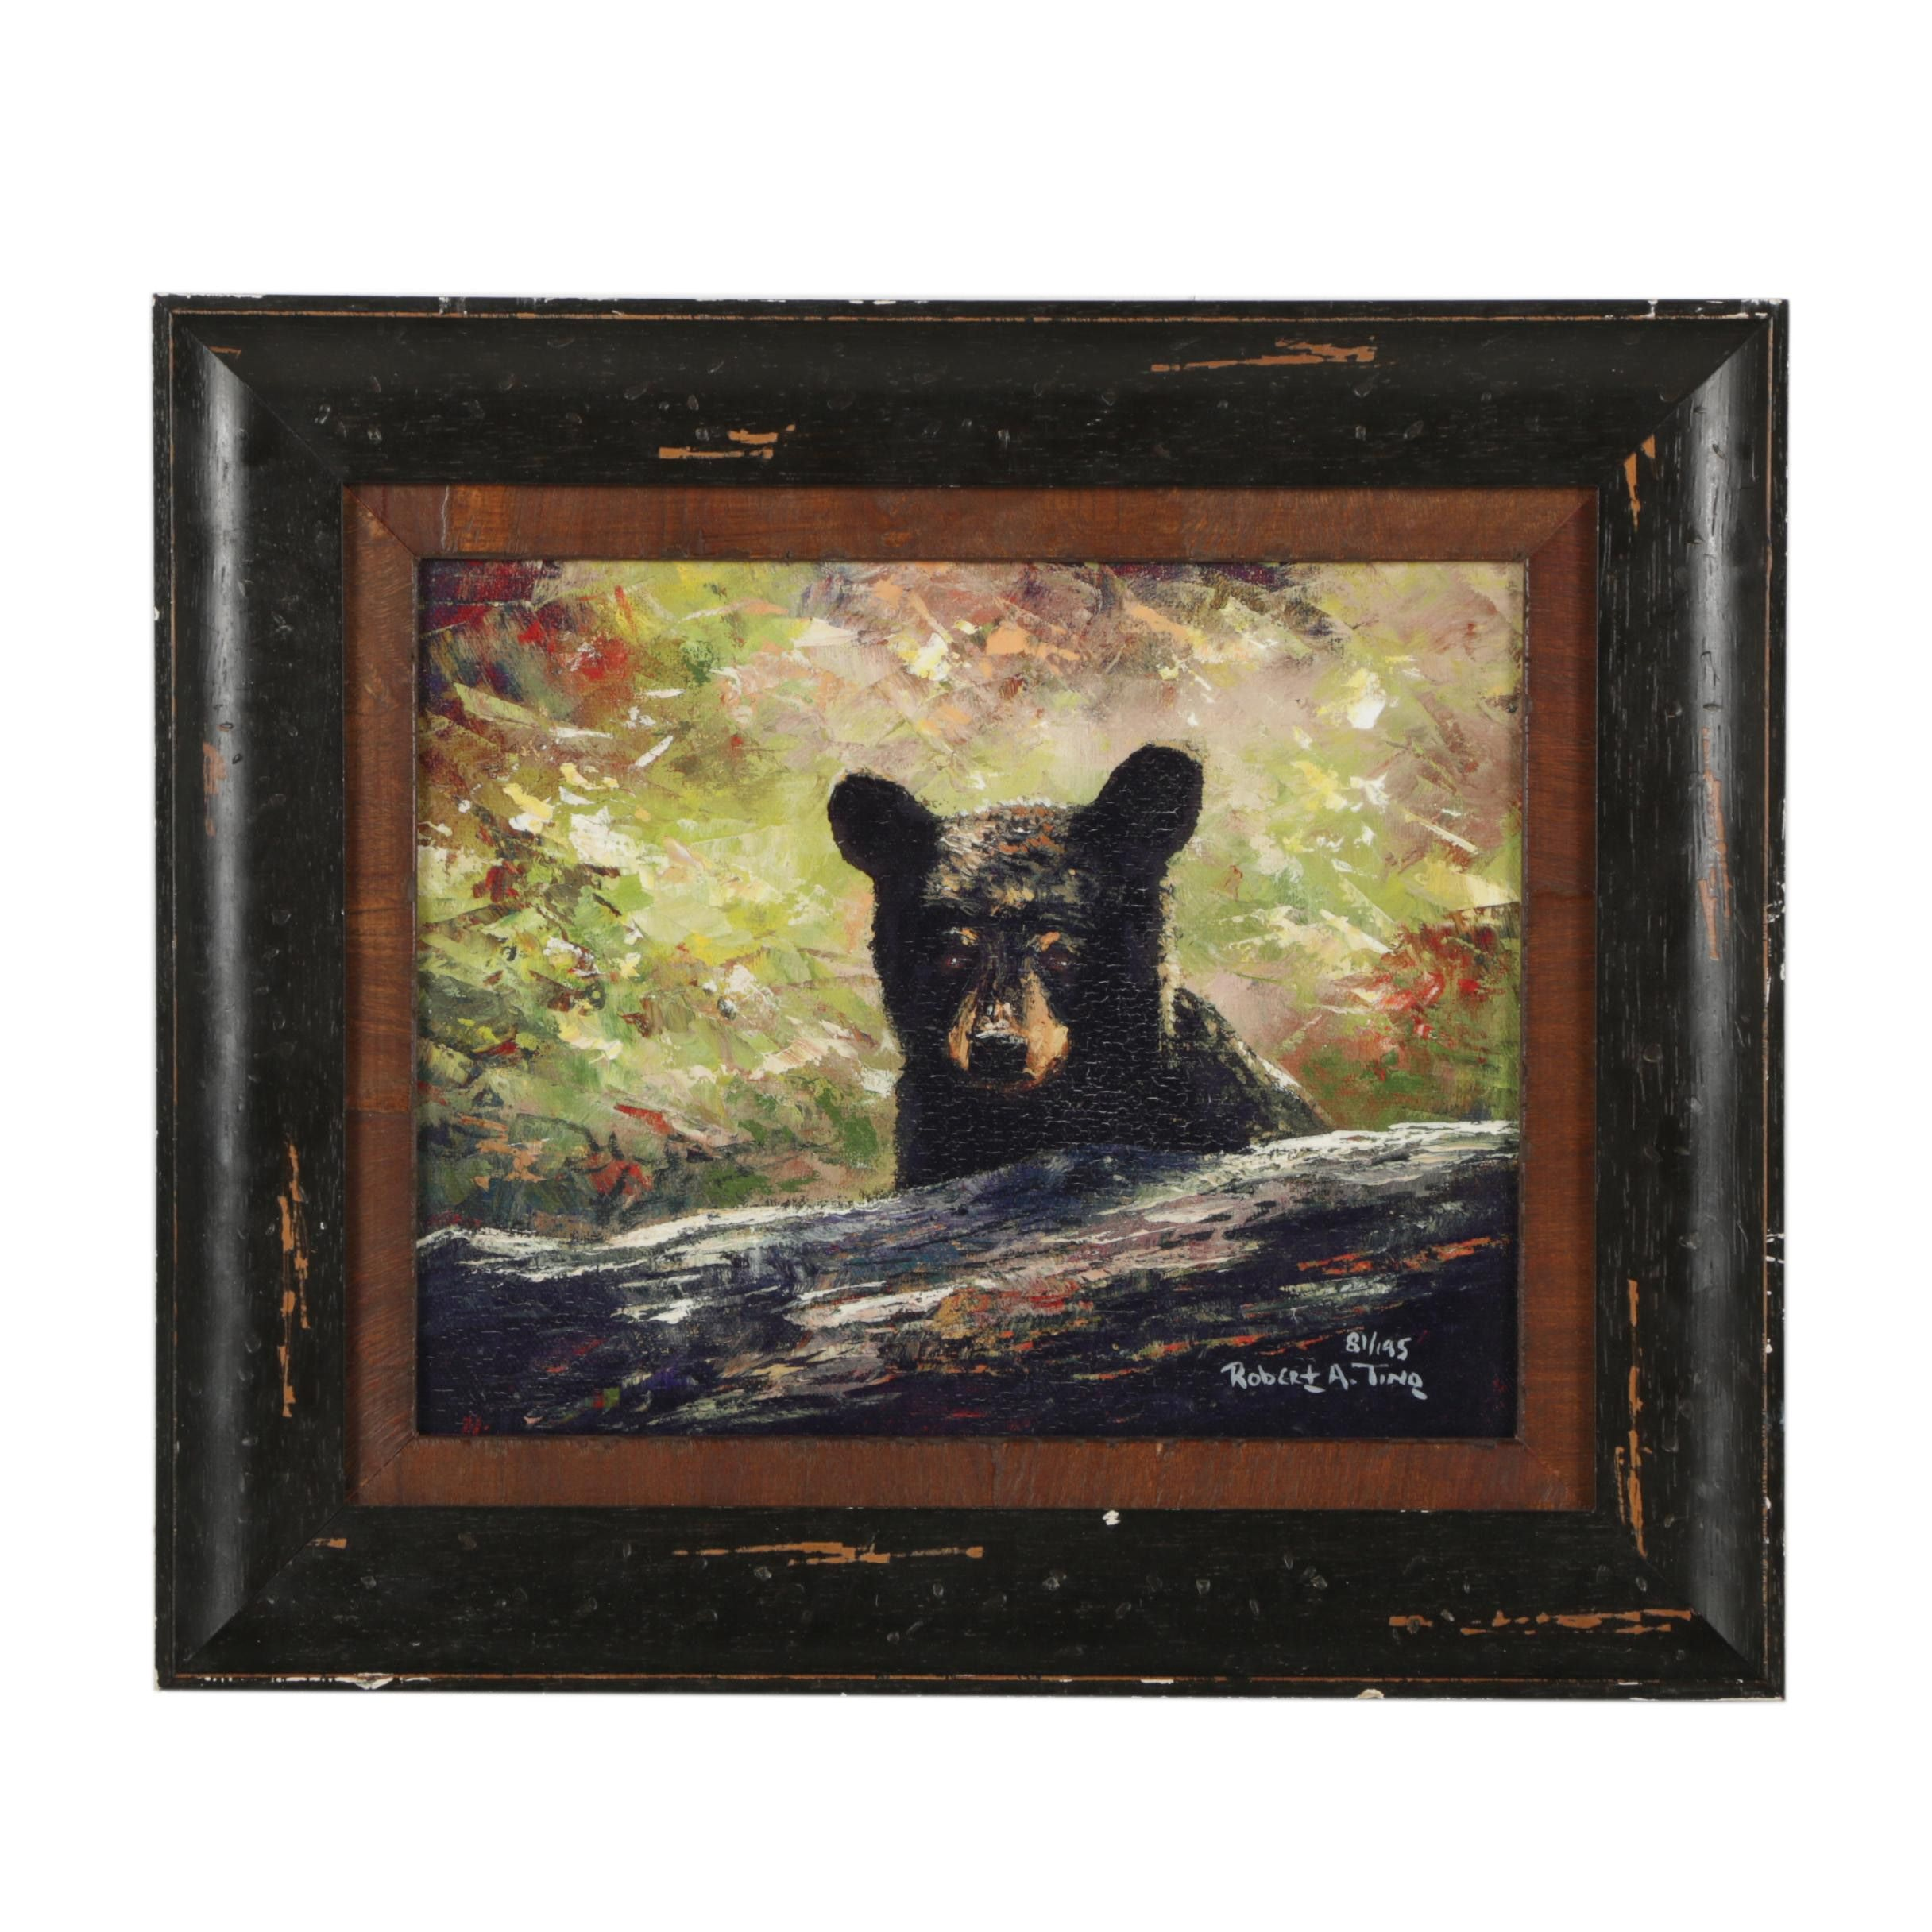 Robert A. Tino Giclee of Bear Cub